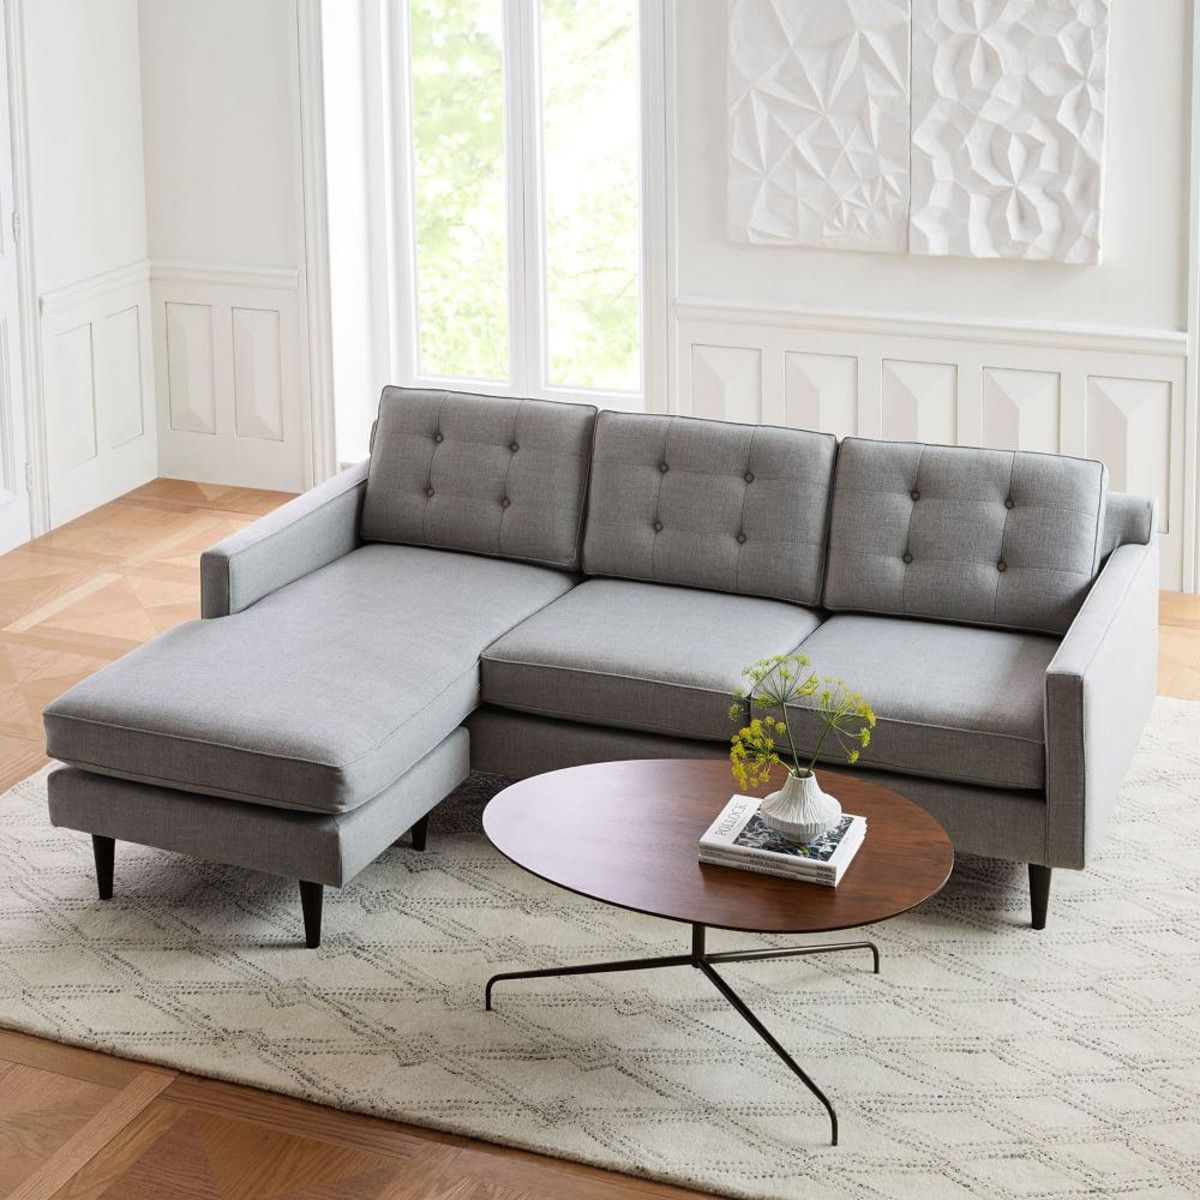 Drake Reversible Sectional West Elm Canada Most Comfortable Couch Comfortable Couch Furniture